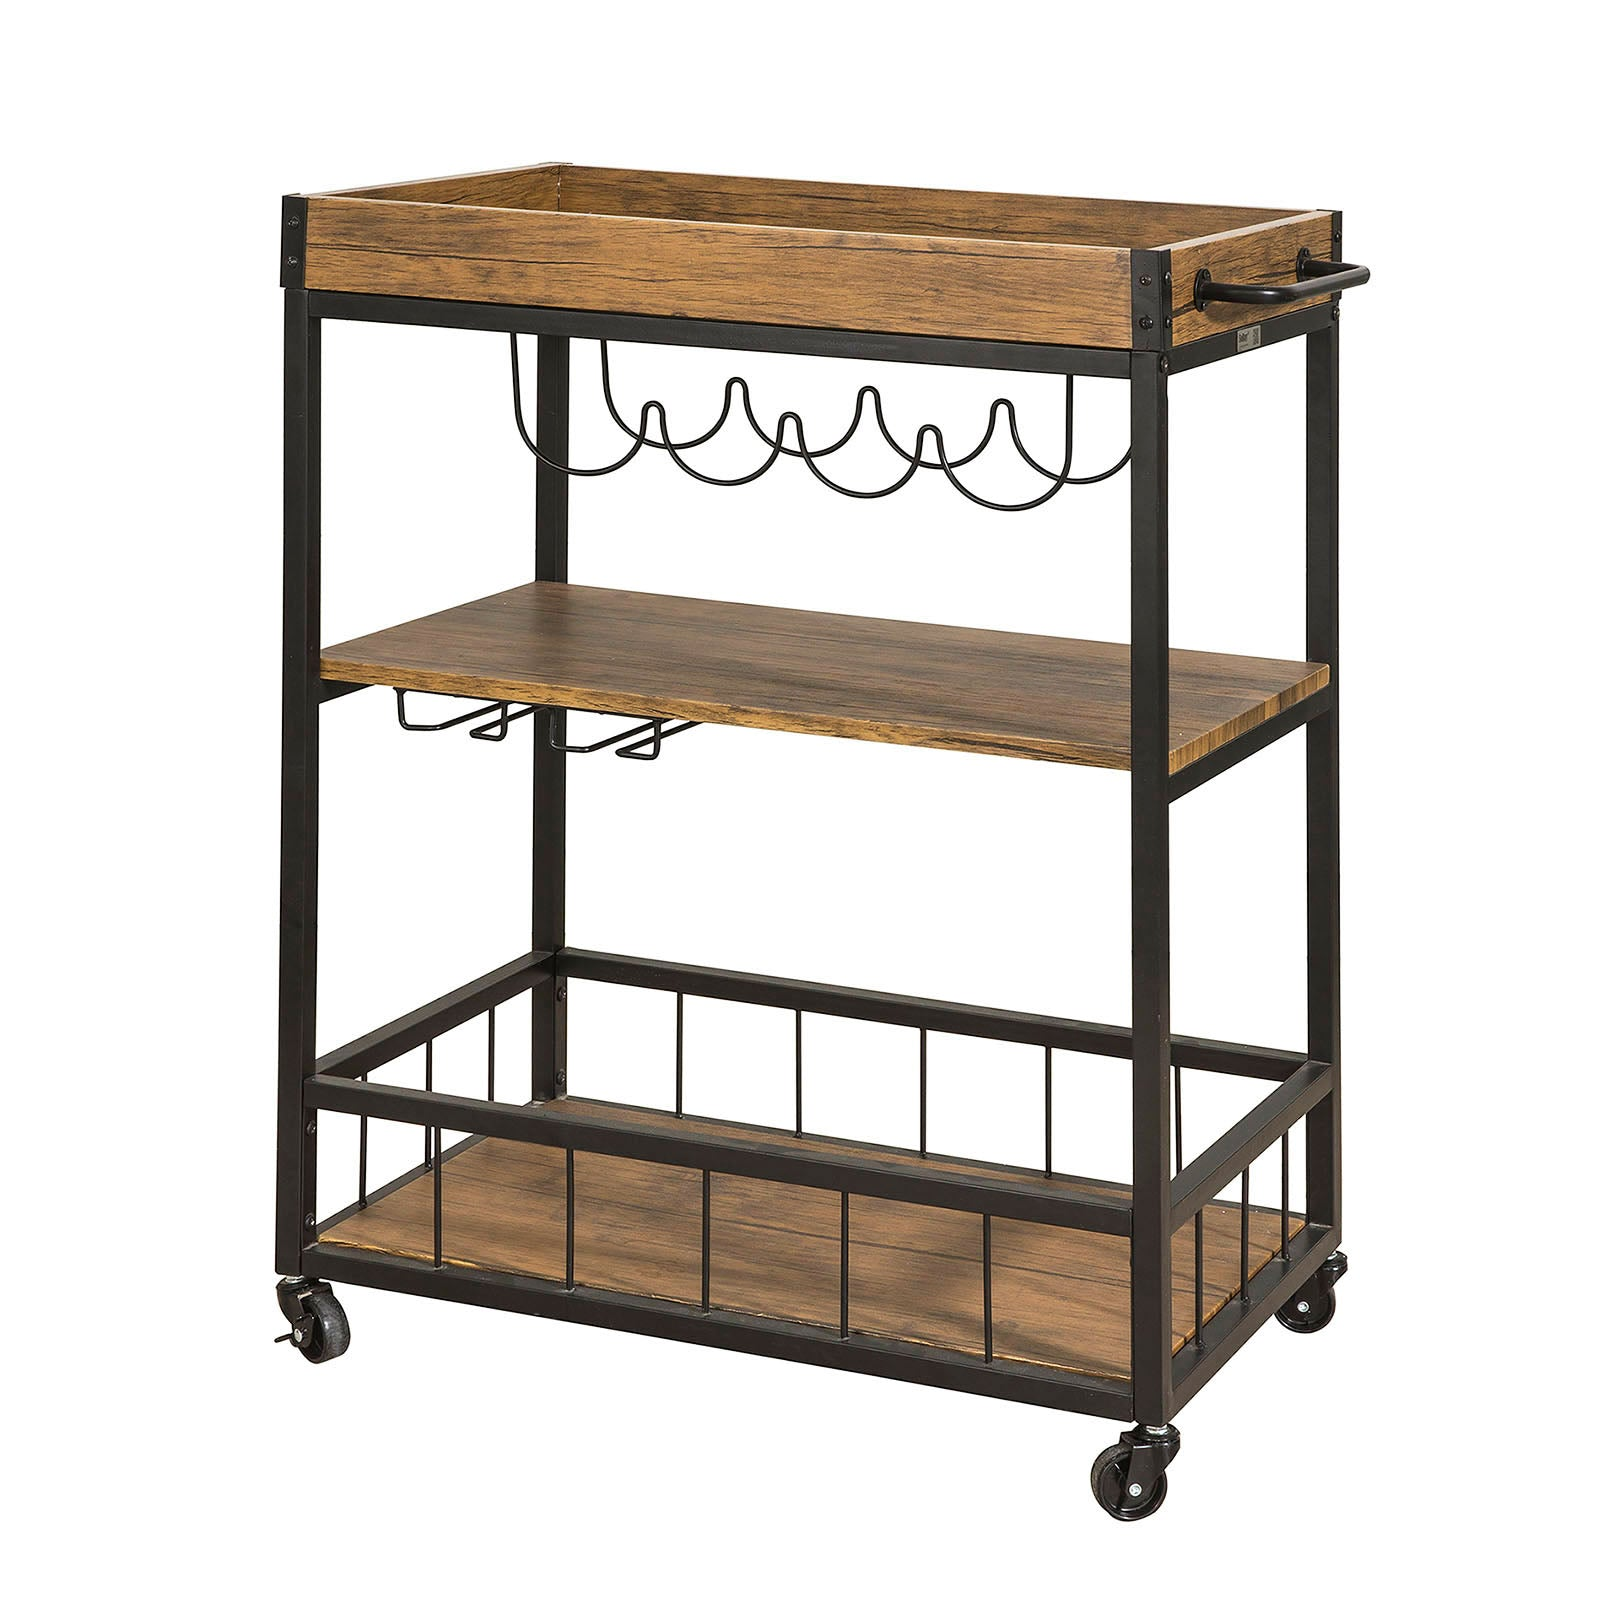 SoBuy Kitchen Cart Kitchen Sideboard Kitchen Cabinet Wood With Route Fkw56-N